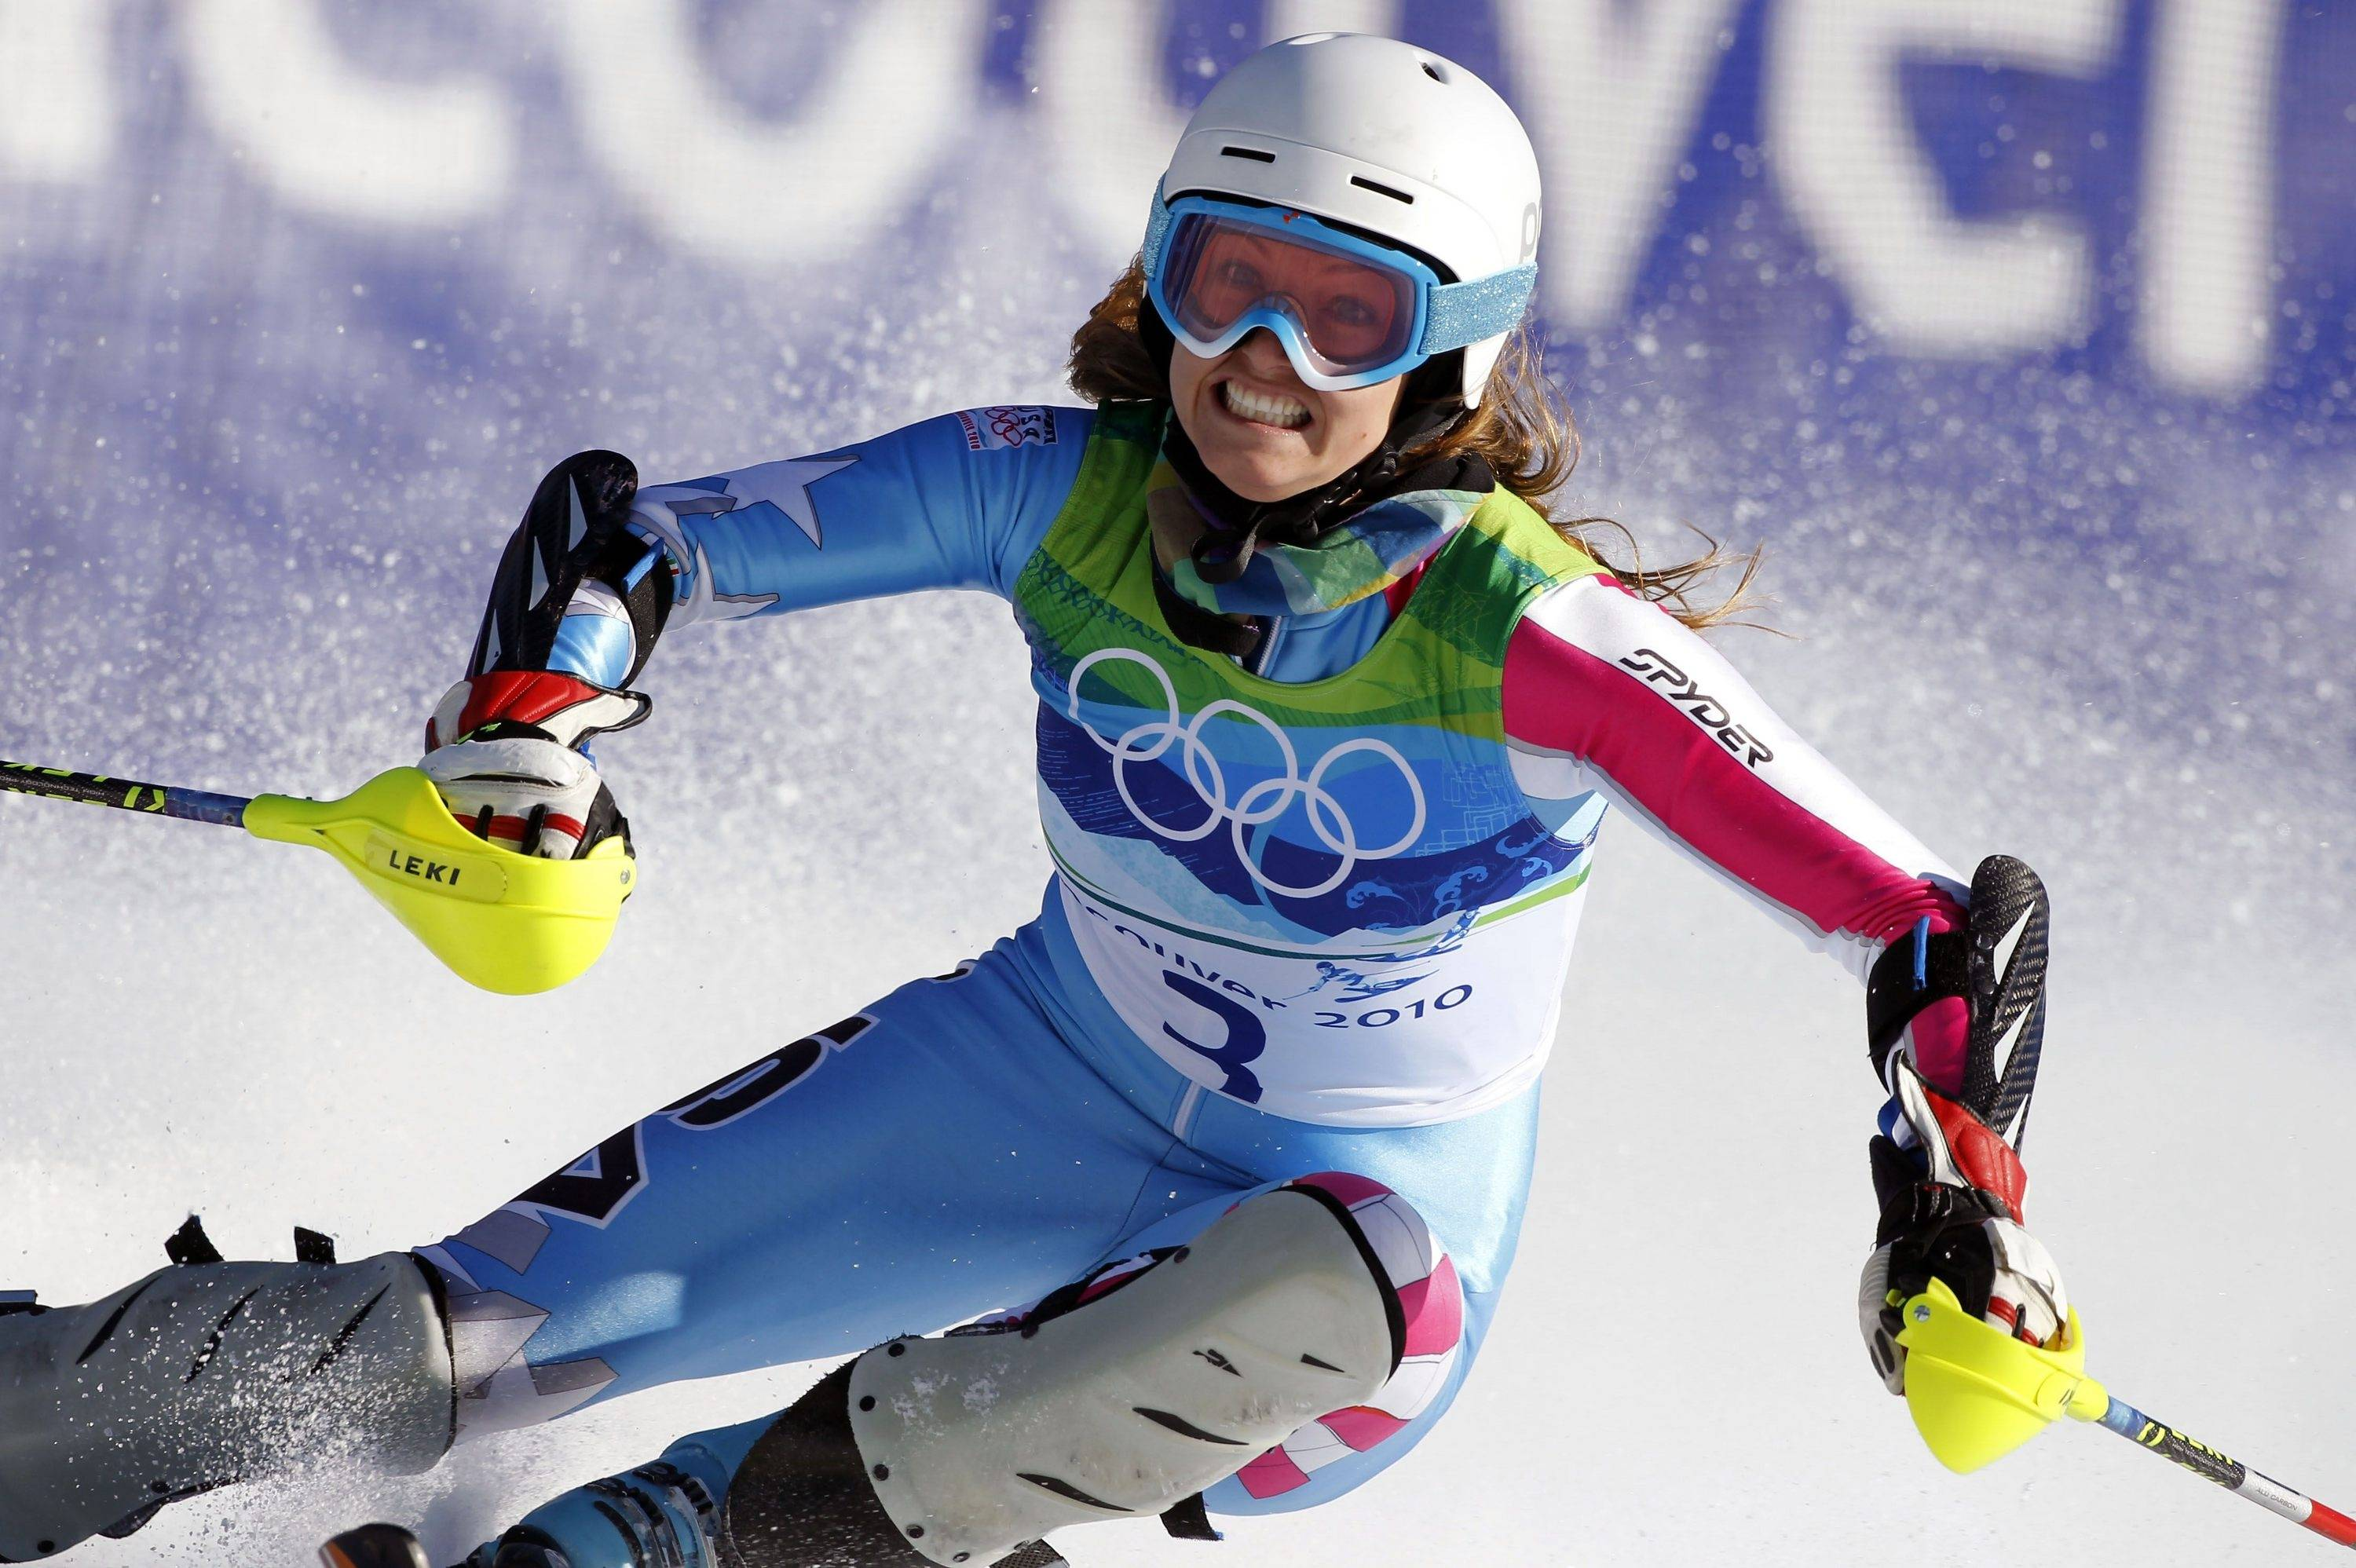 Content with her two silver medals, Julia Mancuso has decided not to enter Friday's Olympic slalom.